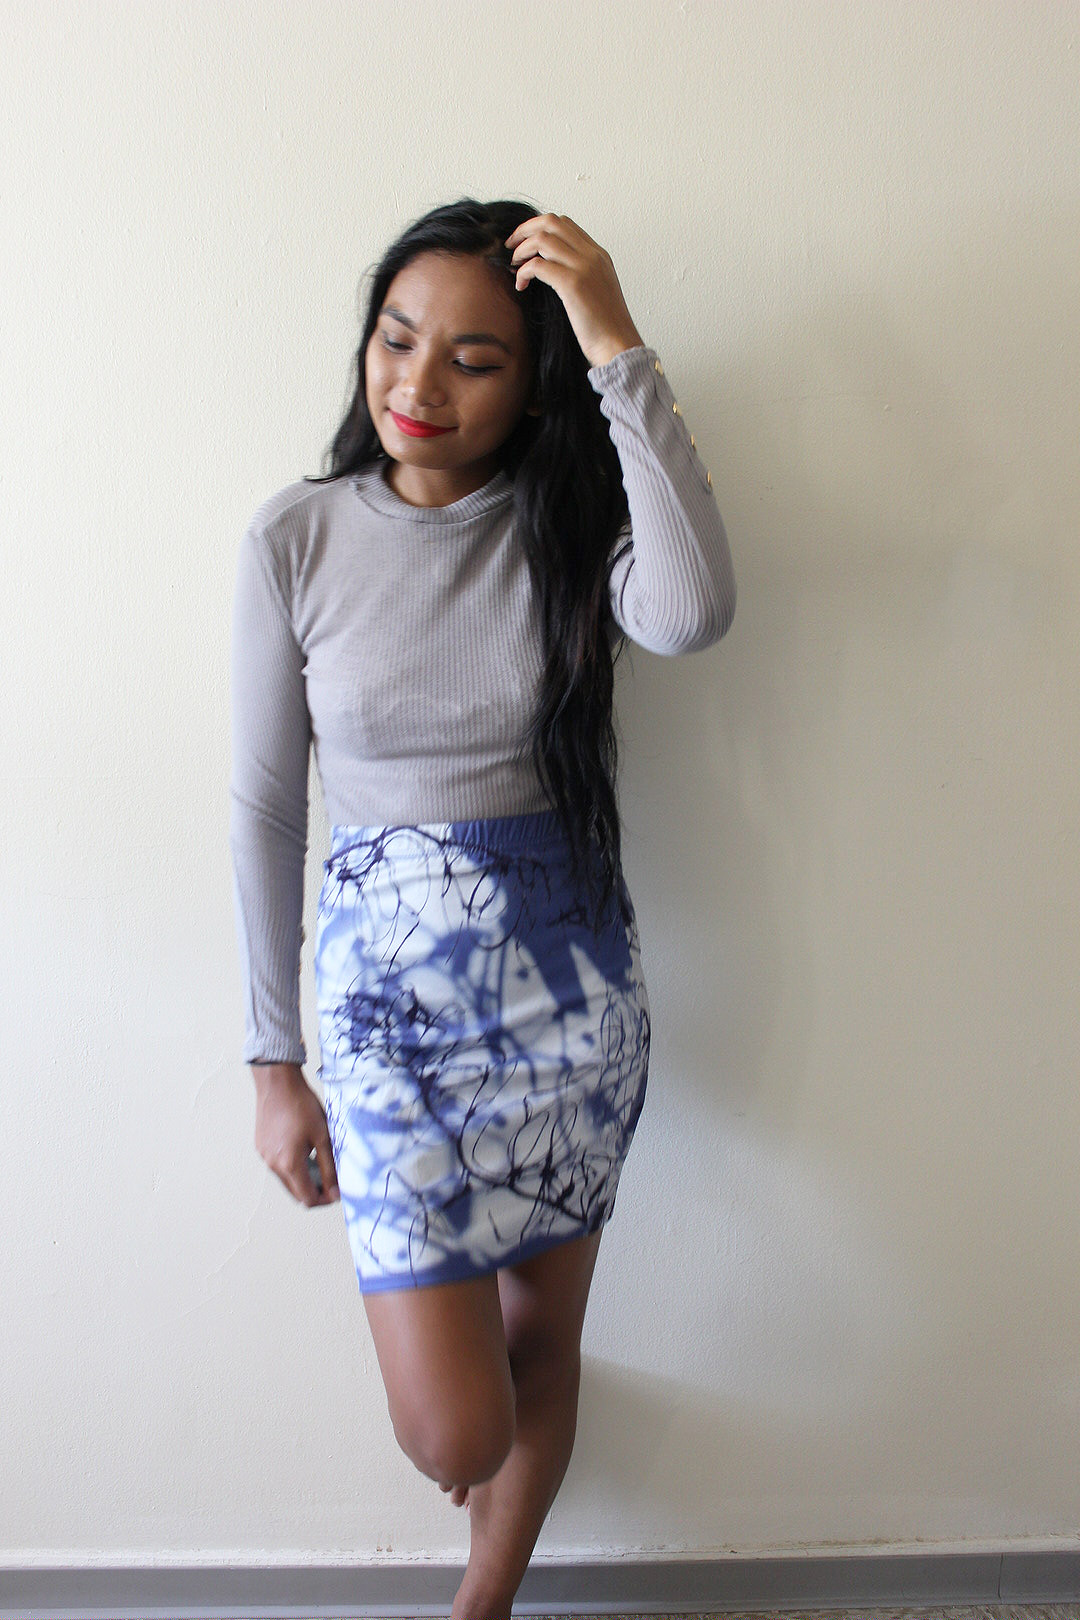 Styling Skirts & Bodysuits in the Fall